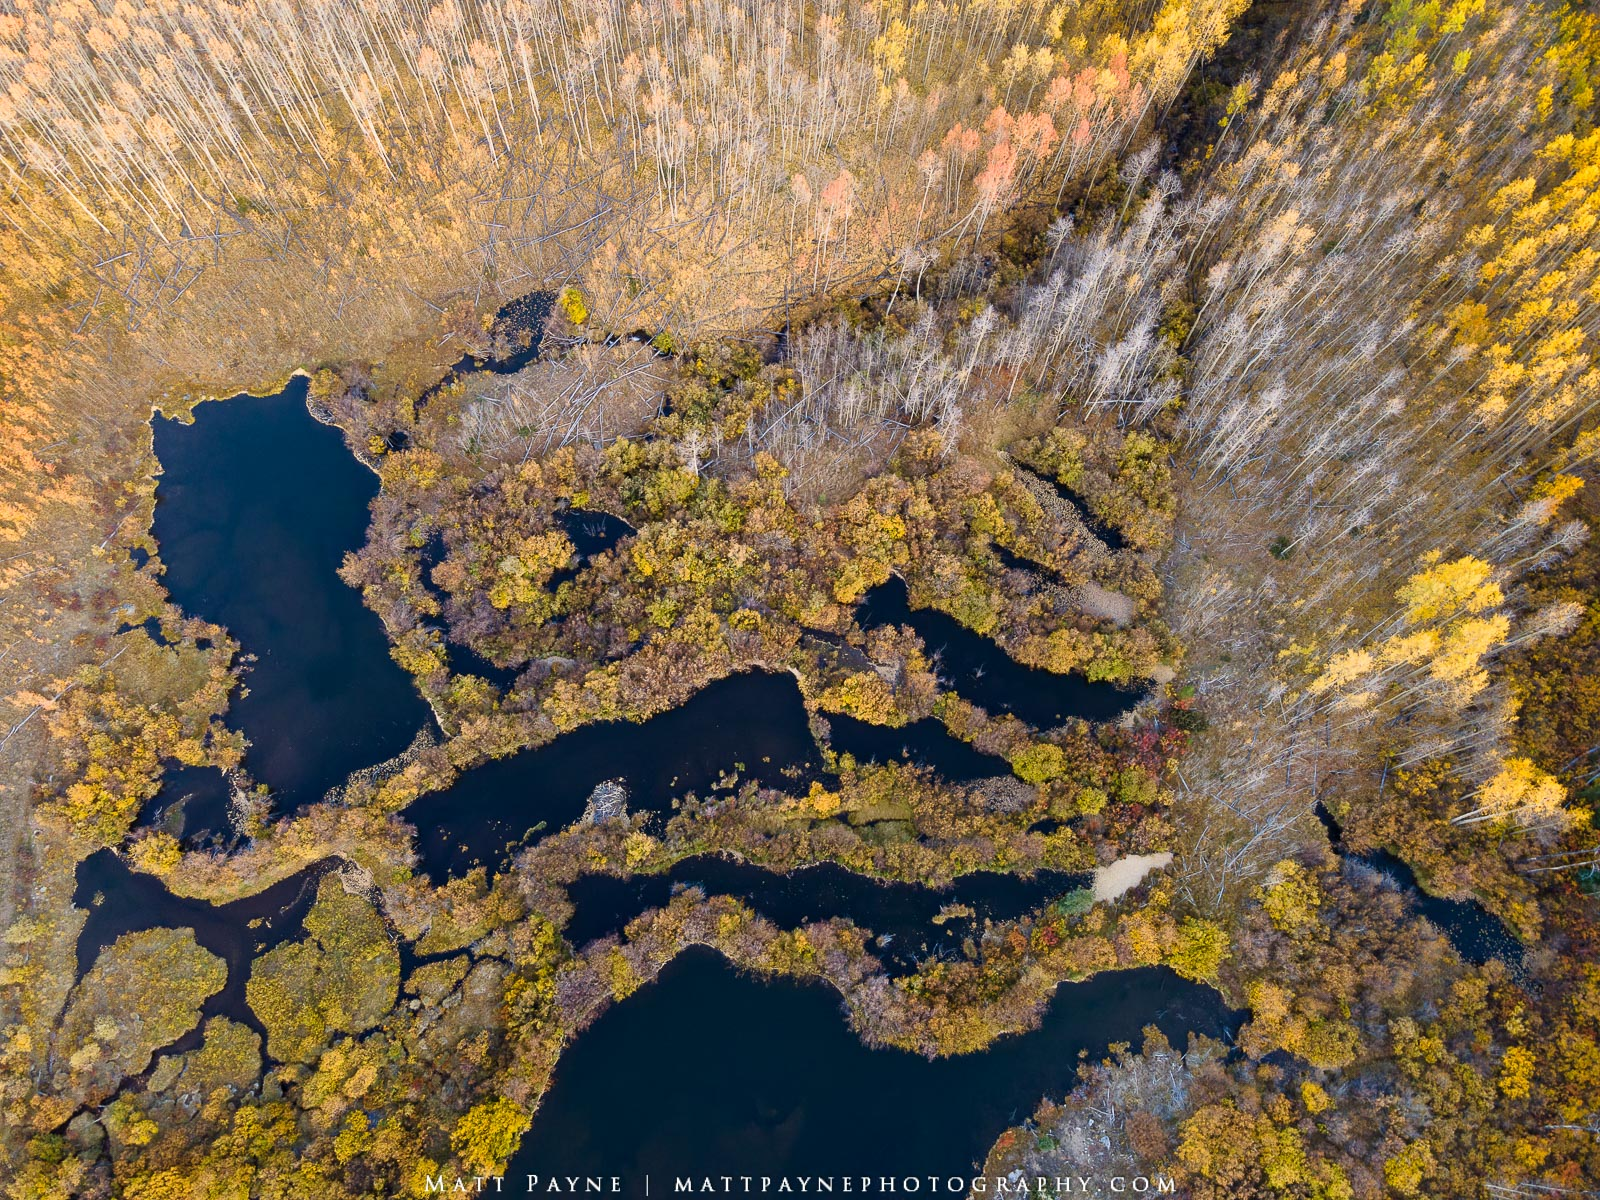 A network of beaver ponds as seen from above in Colorado during fall / autumn. Photo © copyright by Matt Payne.